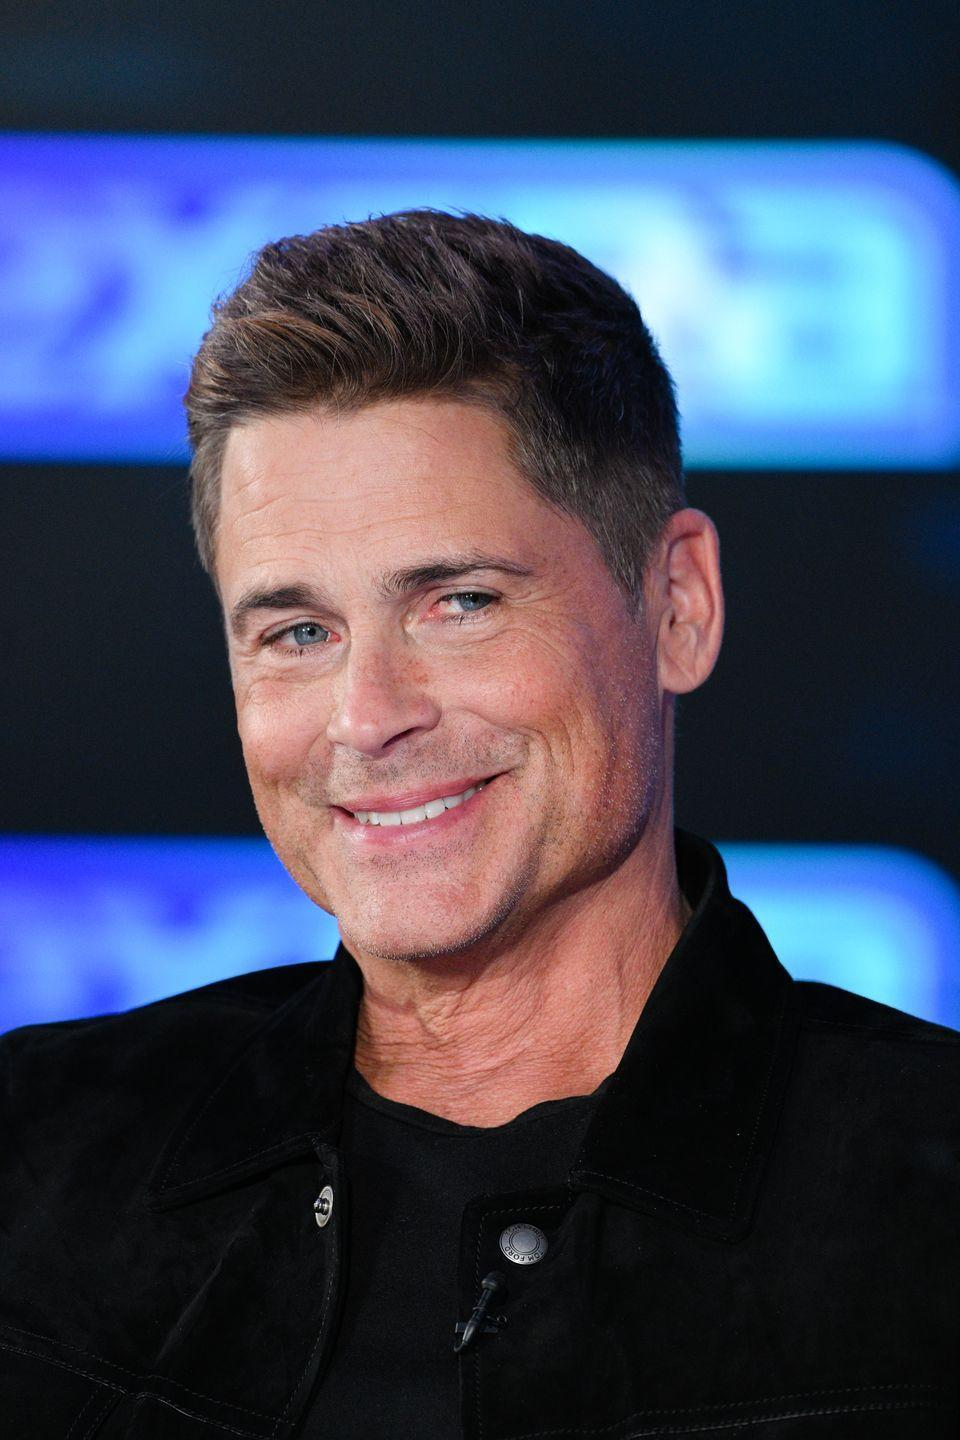 <p>Since then, Lowe has received six Golden Globe nominations for his work in numerous productions like <em>The West Wing</em>, <em>Square Dance</em>, and <em>Behind The Candelabra.</em></p>